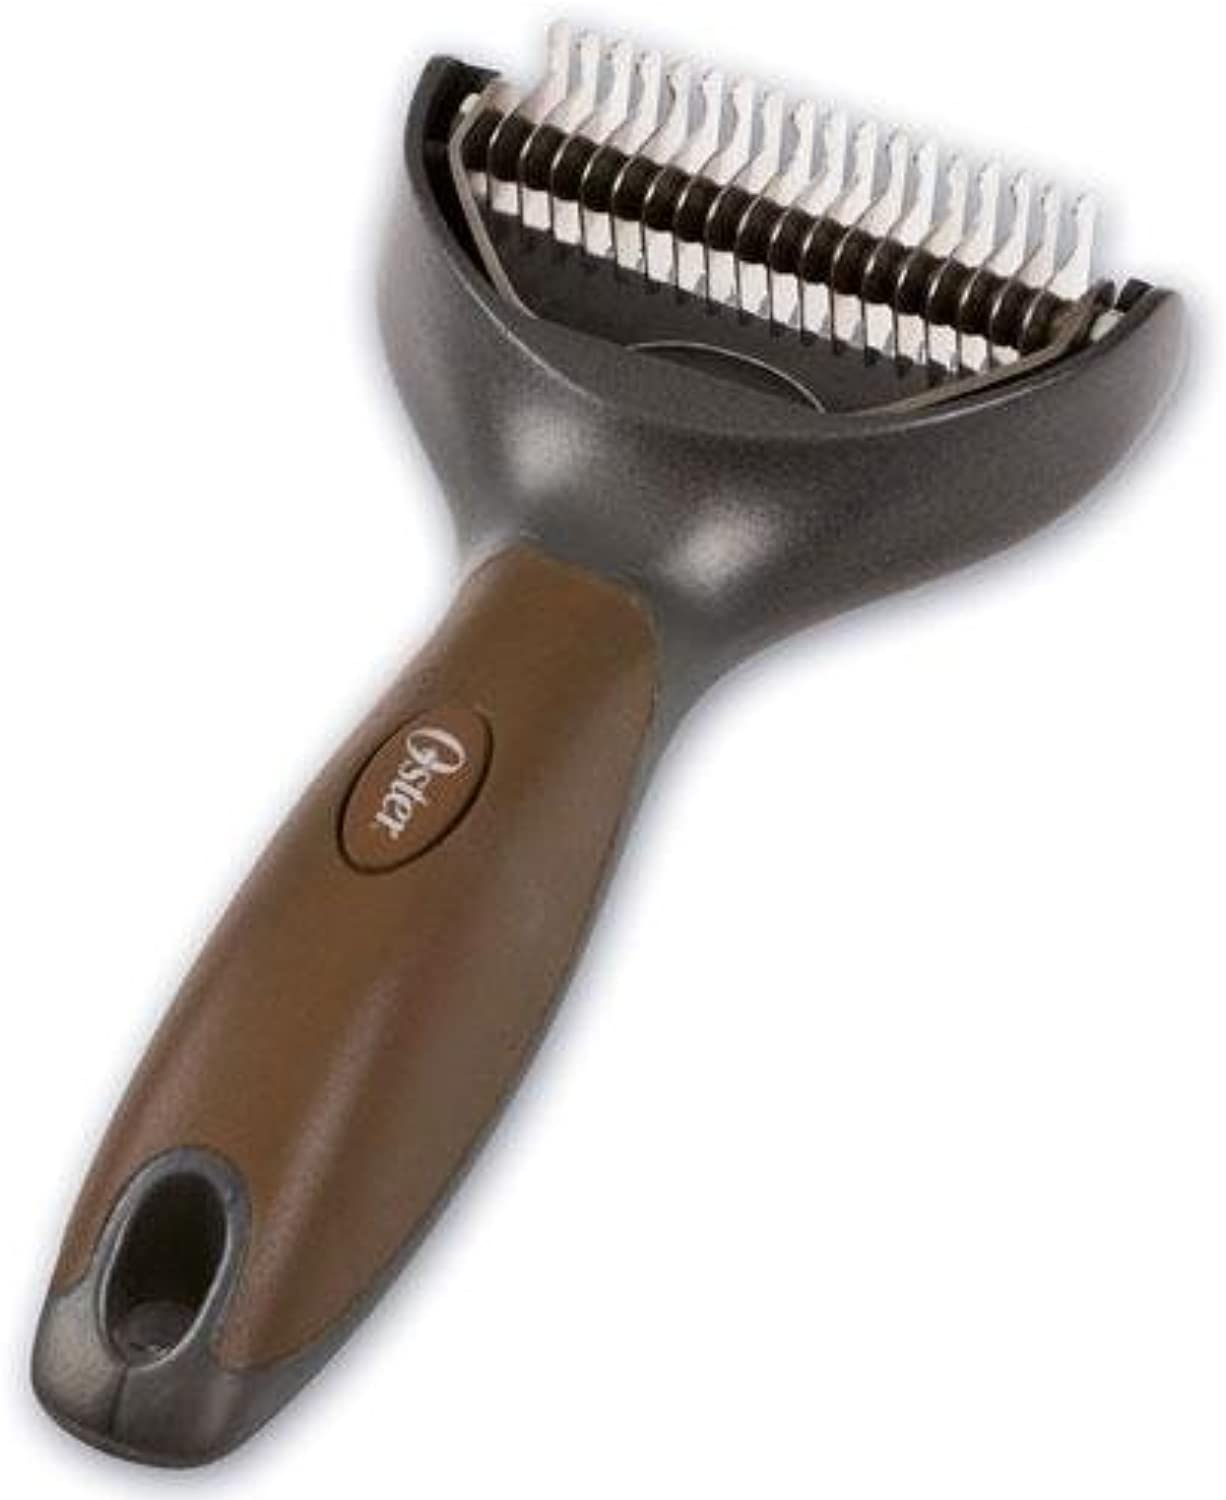 Easter Premium Entfilzungsstriegel, brush, curry comb, grooming for dogs